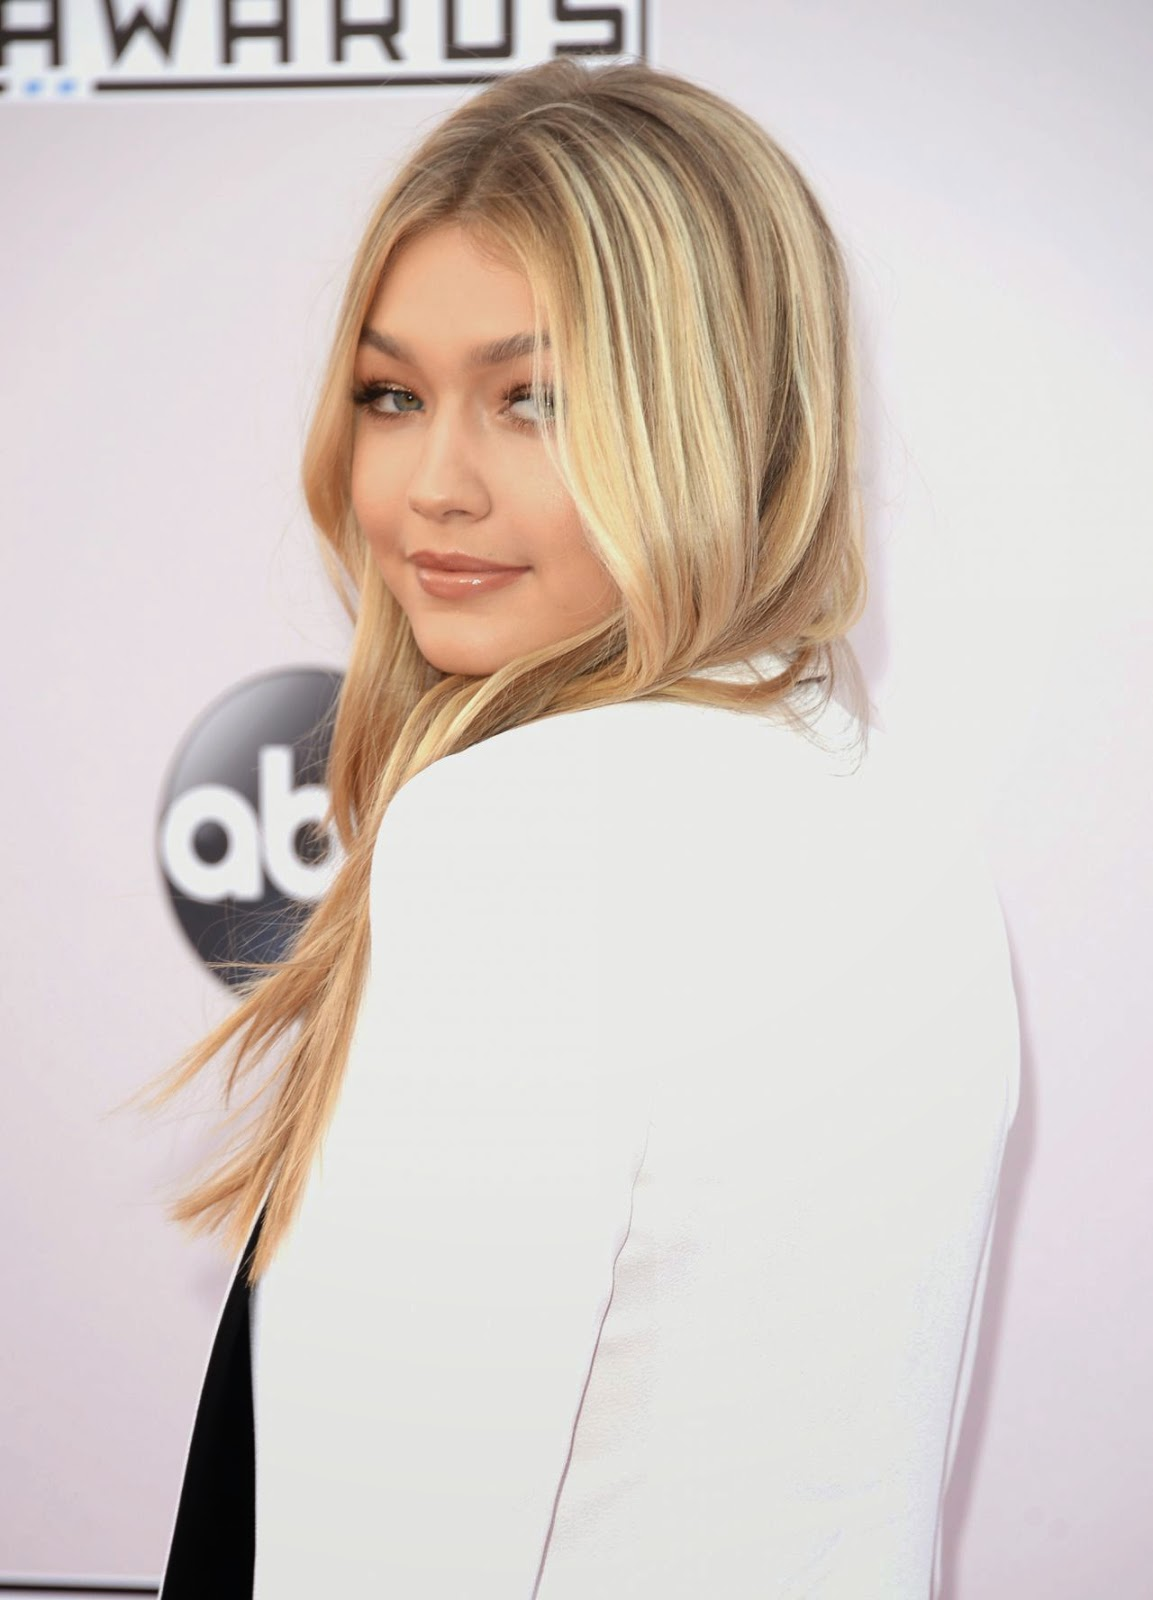 Gigi Hadid - 2014 American Music Awards